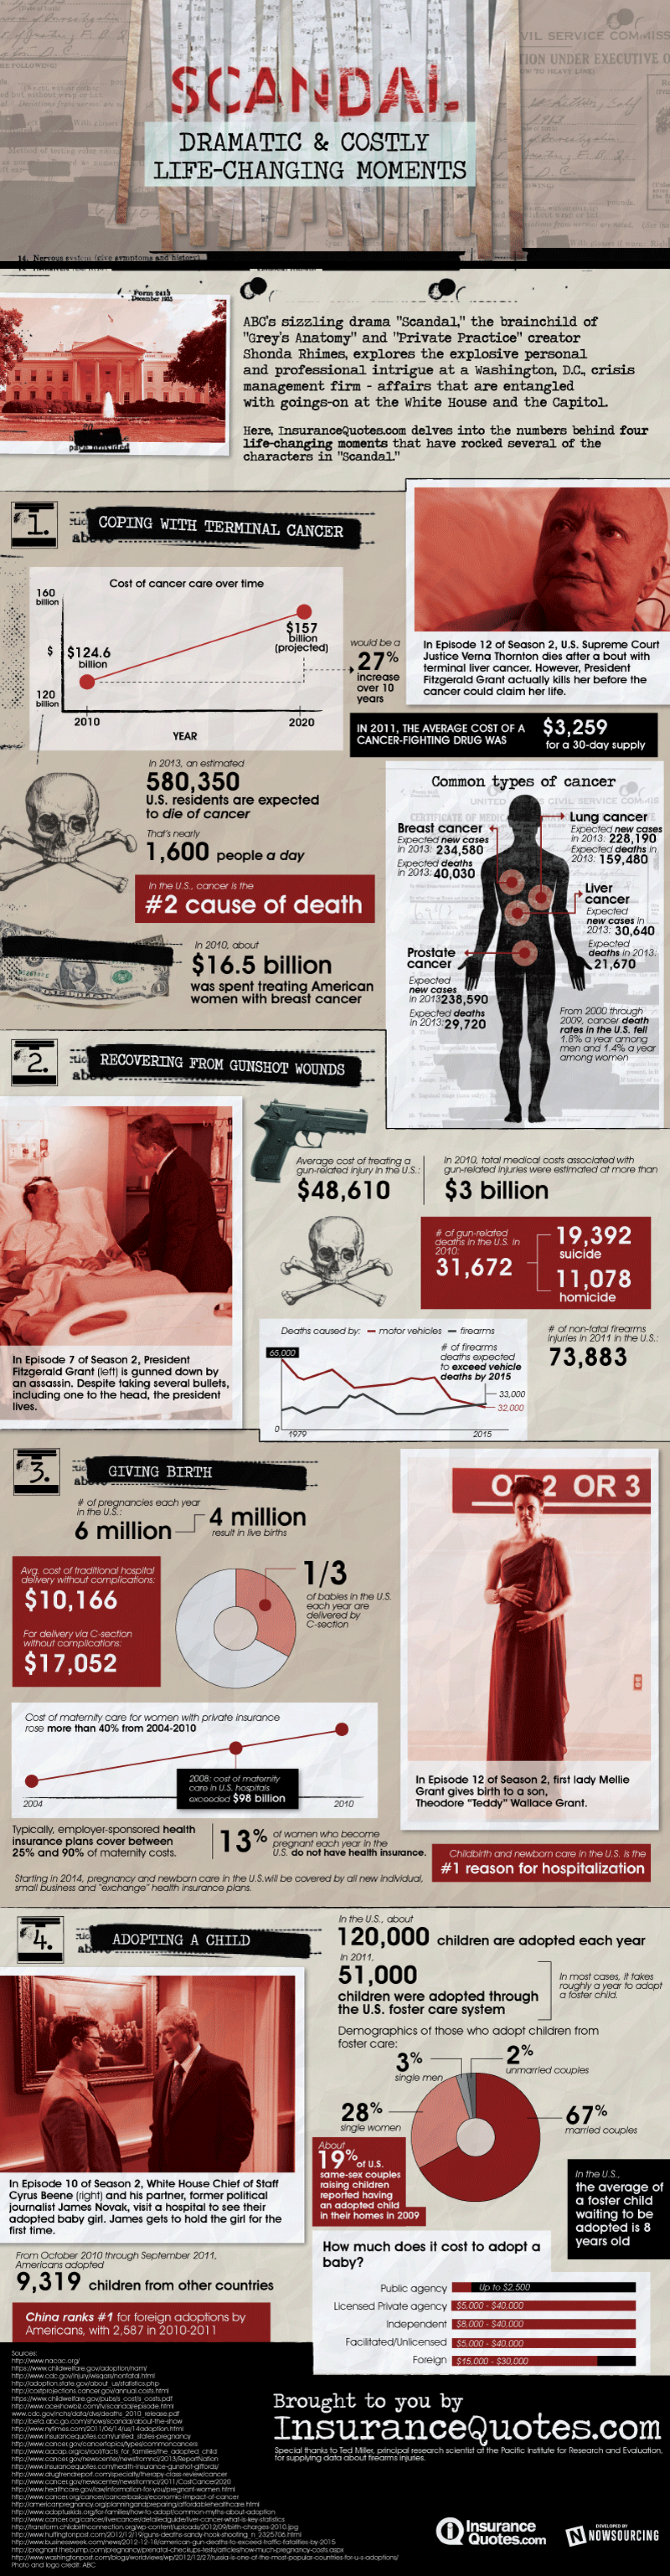 Scandal: Dramatic & Costly Life-Changing Moments Infographic